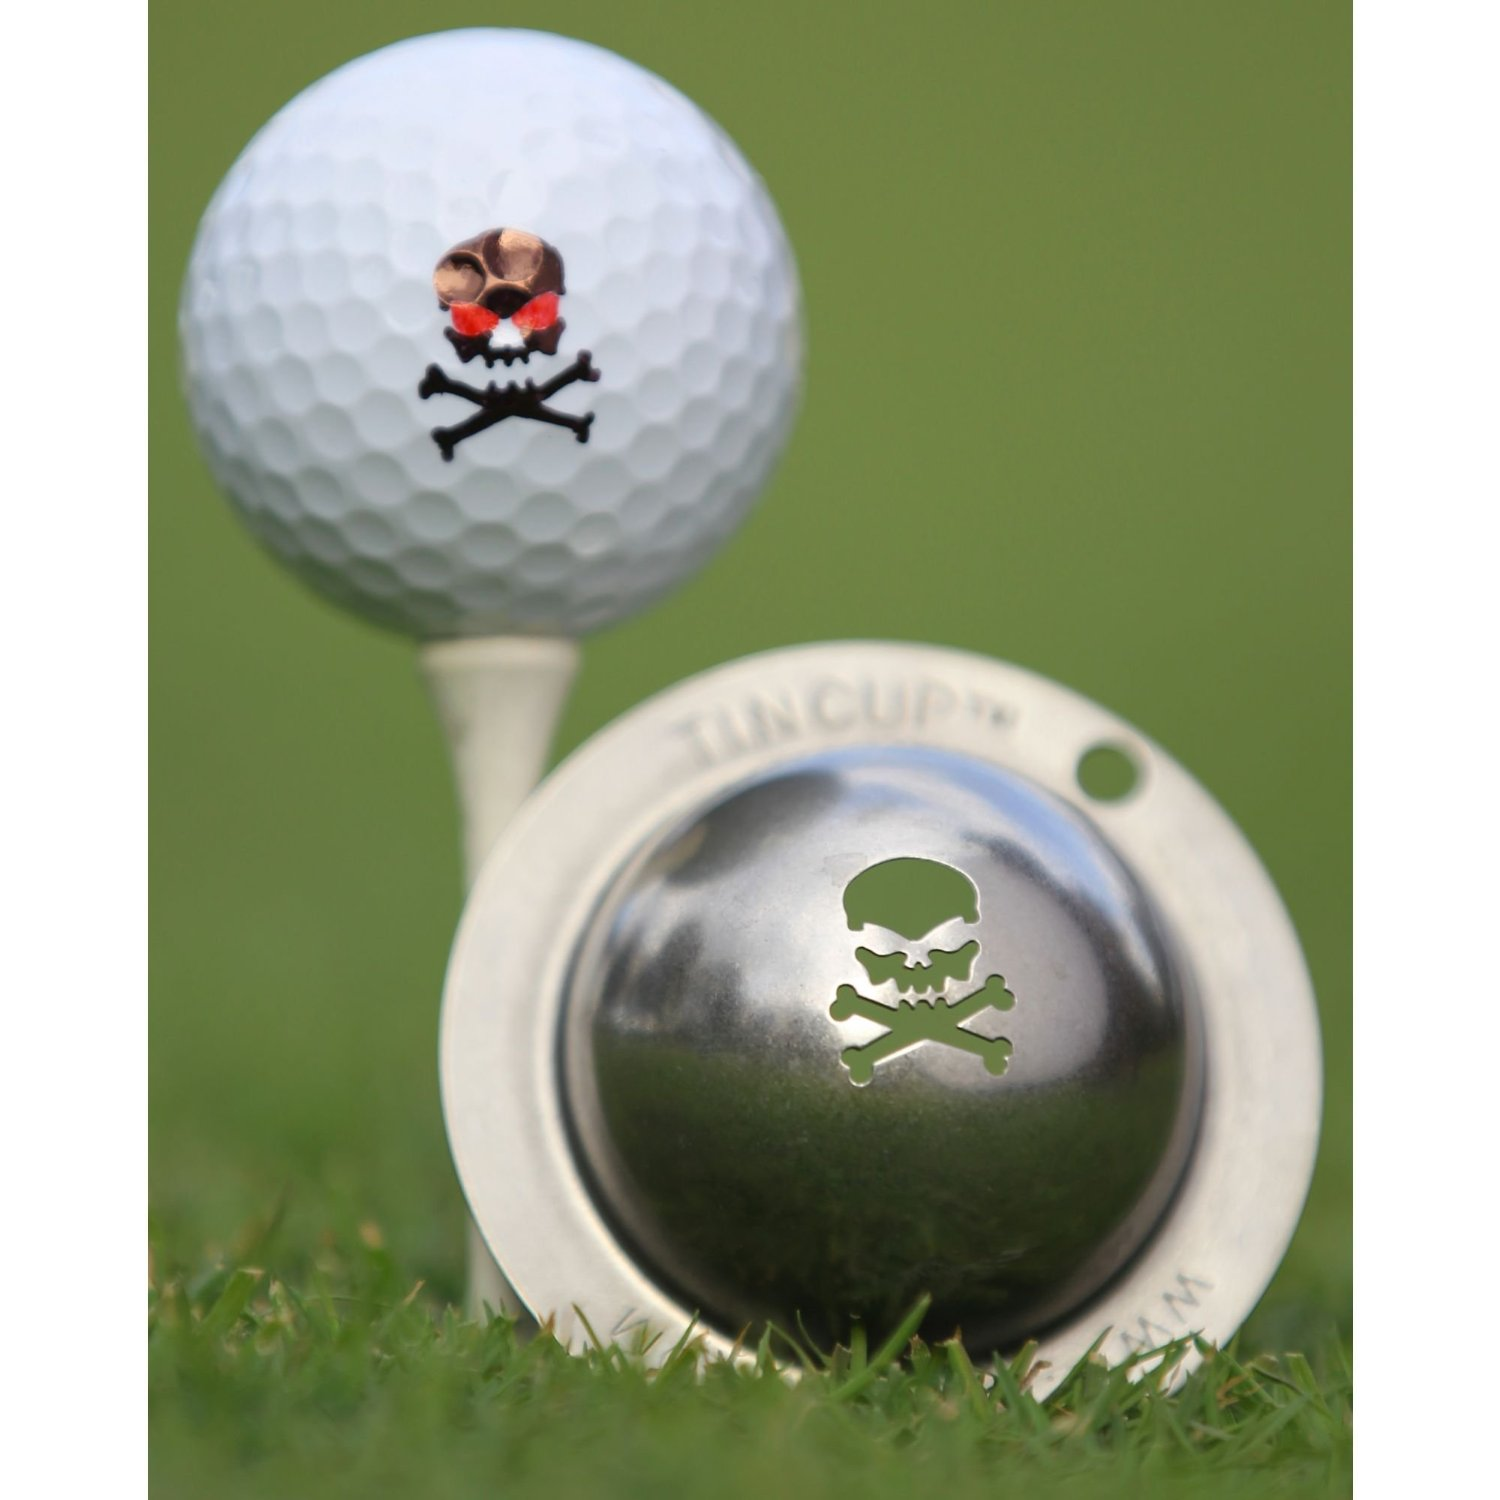 Tin Cup Bombs Away Golf Ball Marking Stencil, Steel